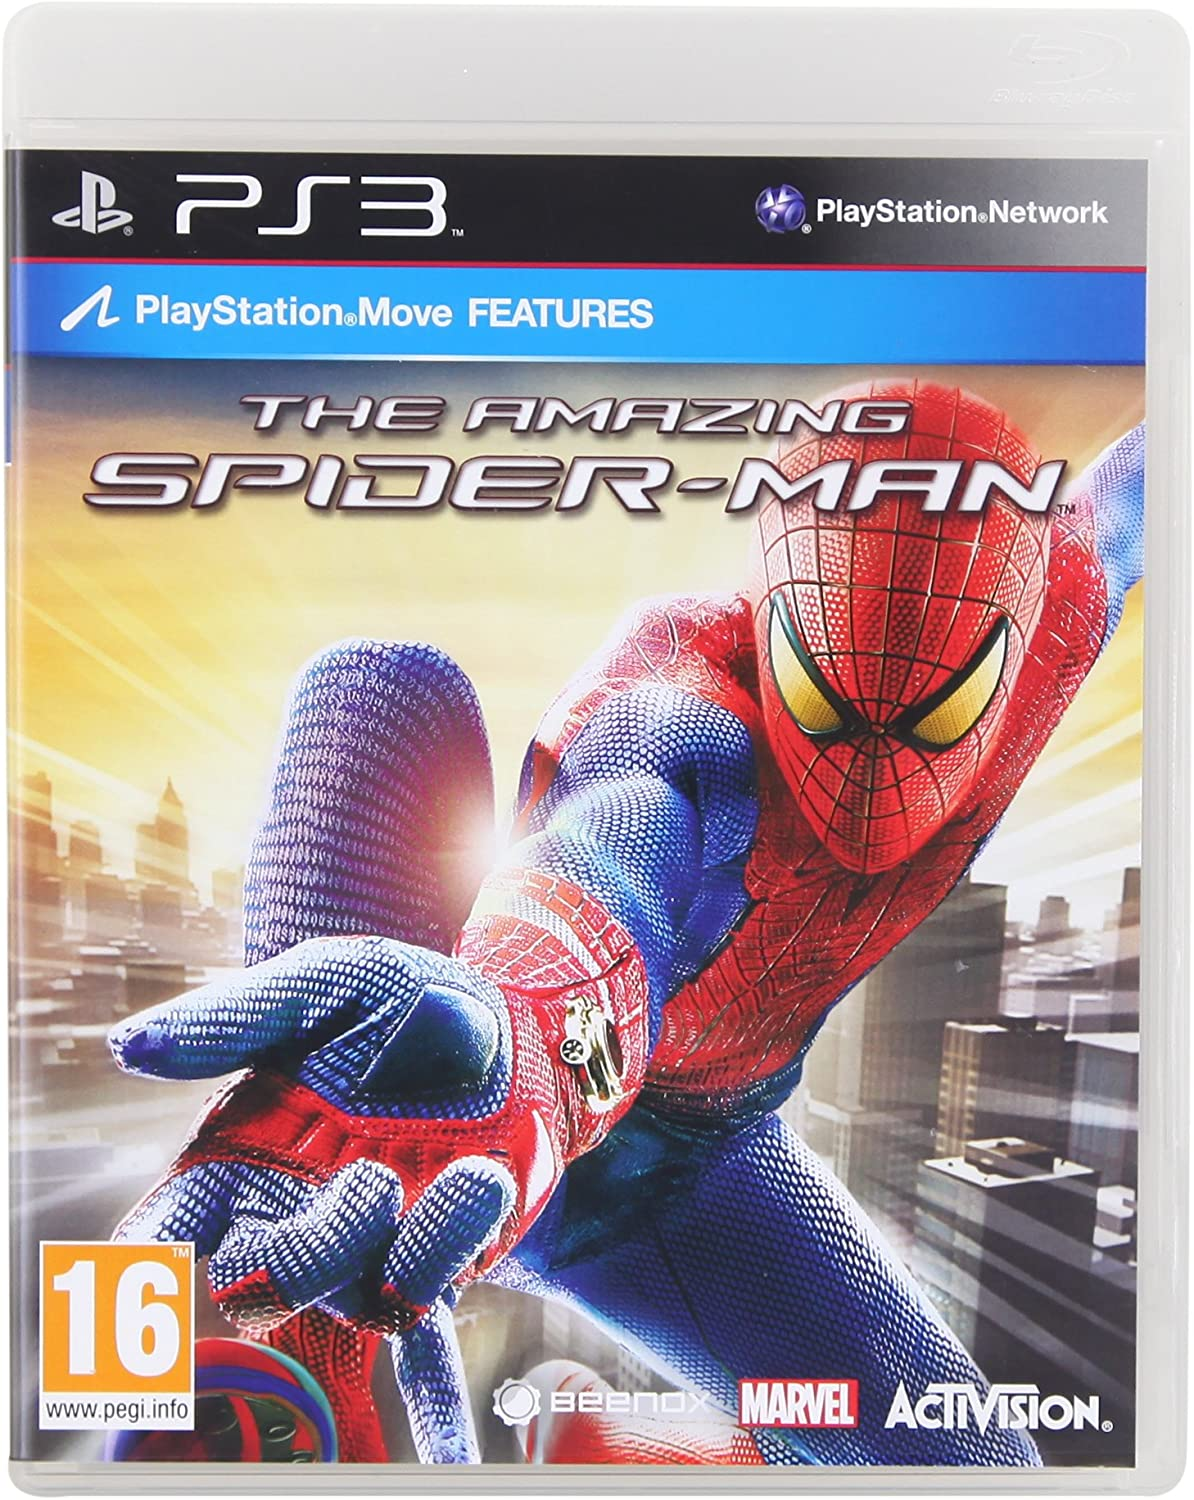 Spider Man 2 Cheat Codes Wii Wiring Library Ford Xh Diagram Amazoncom Amazing Playstation 3 Video Games